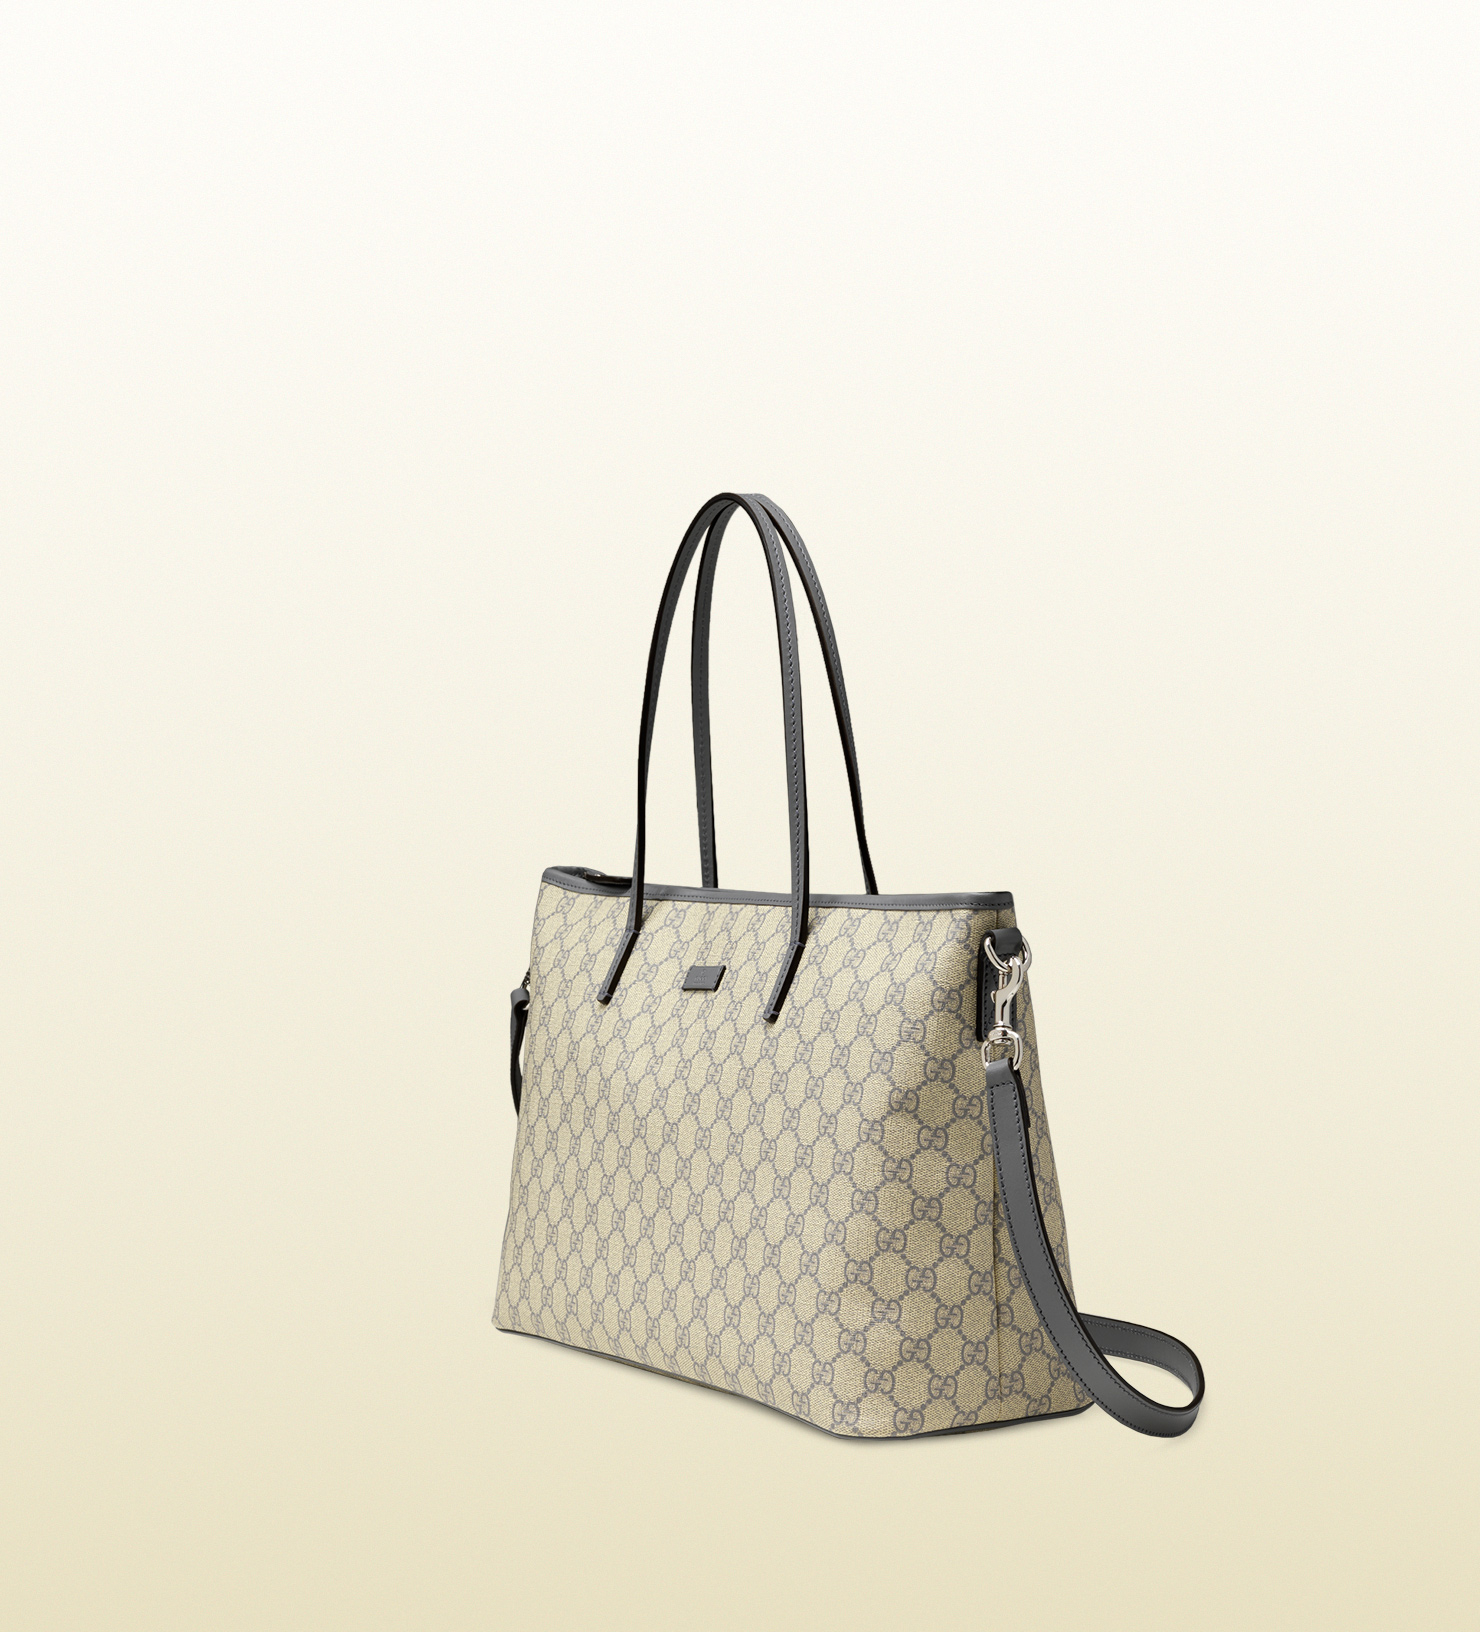 59dca214d Gucci Gg Supreme Canvas Tote in Natural - Lyst